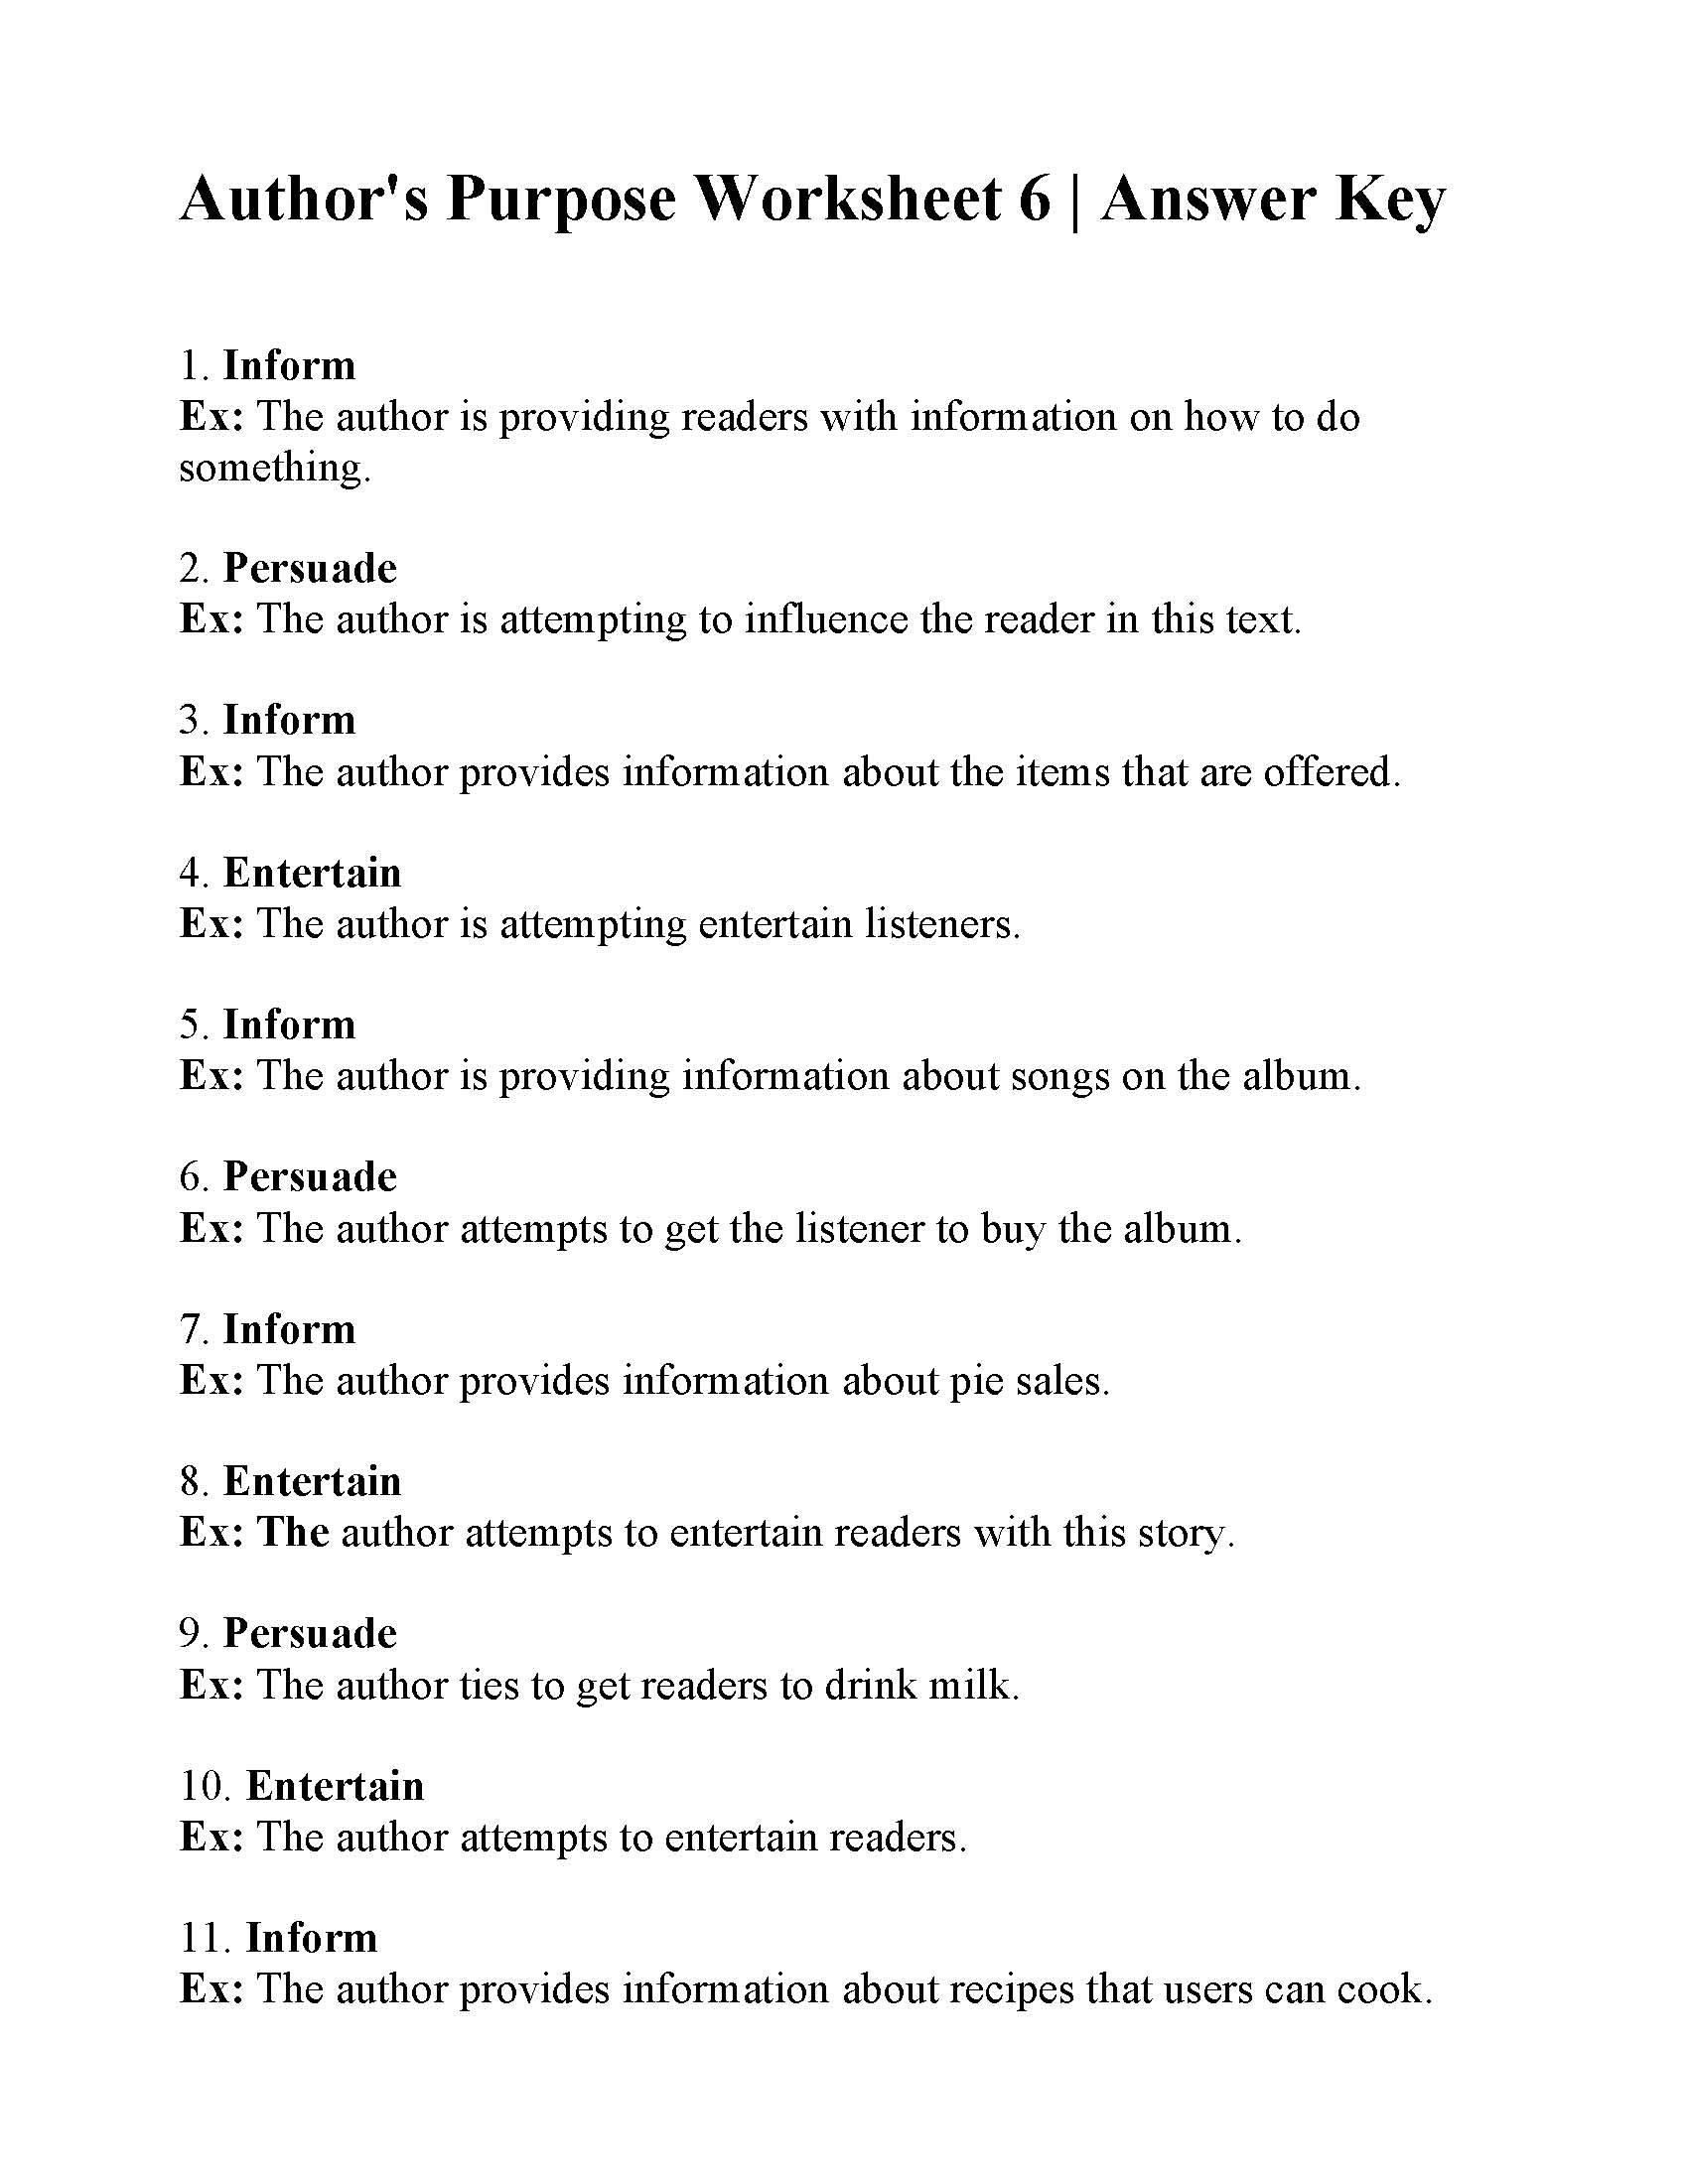 Author's Purpose Worksheet 6 | Answers